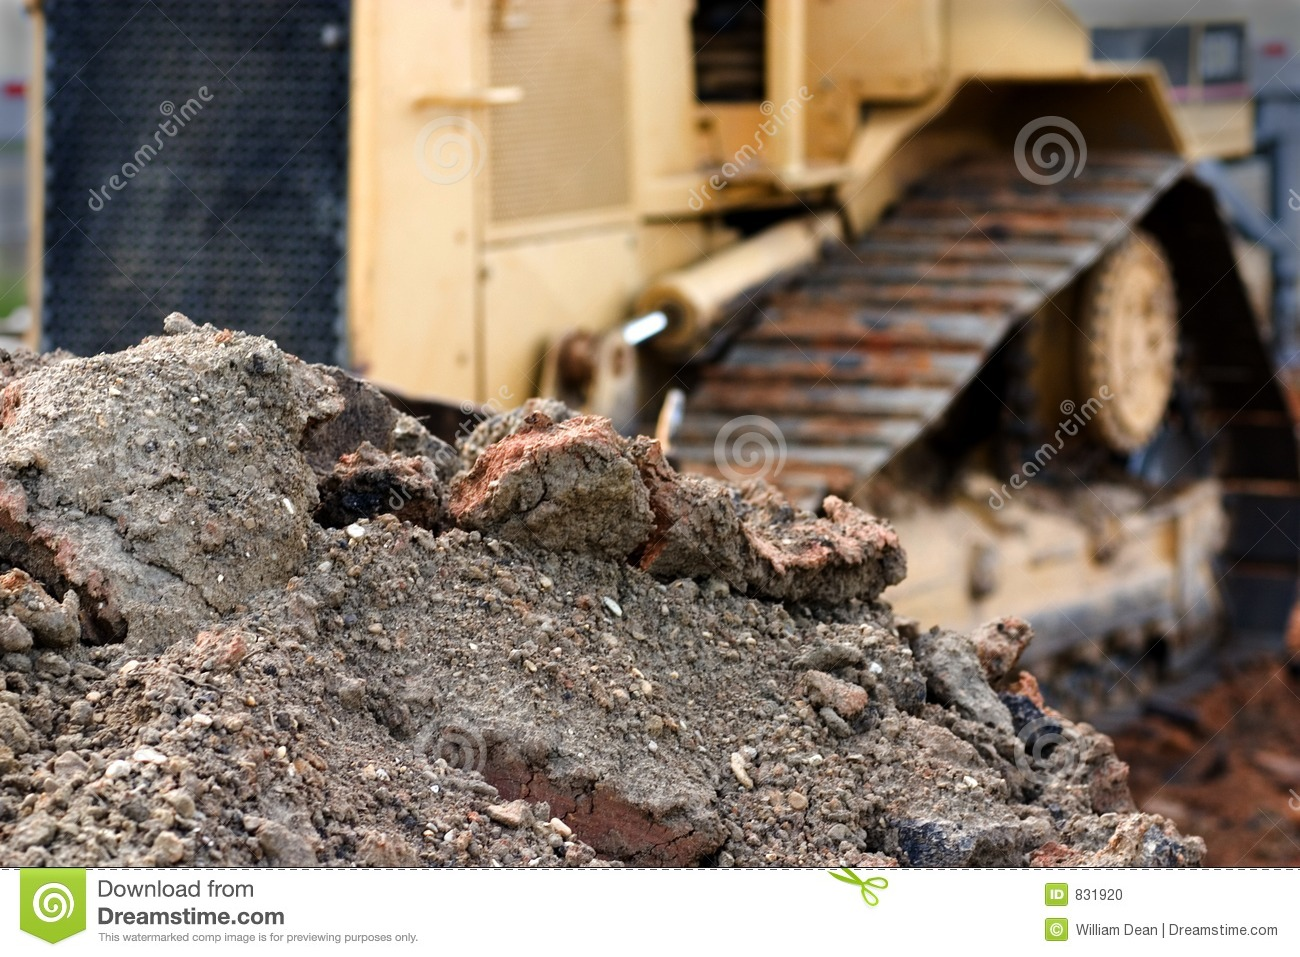 Pile of dirt and rocks